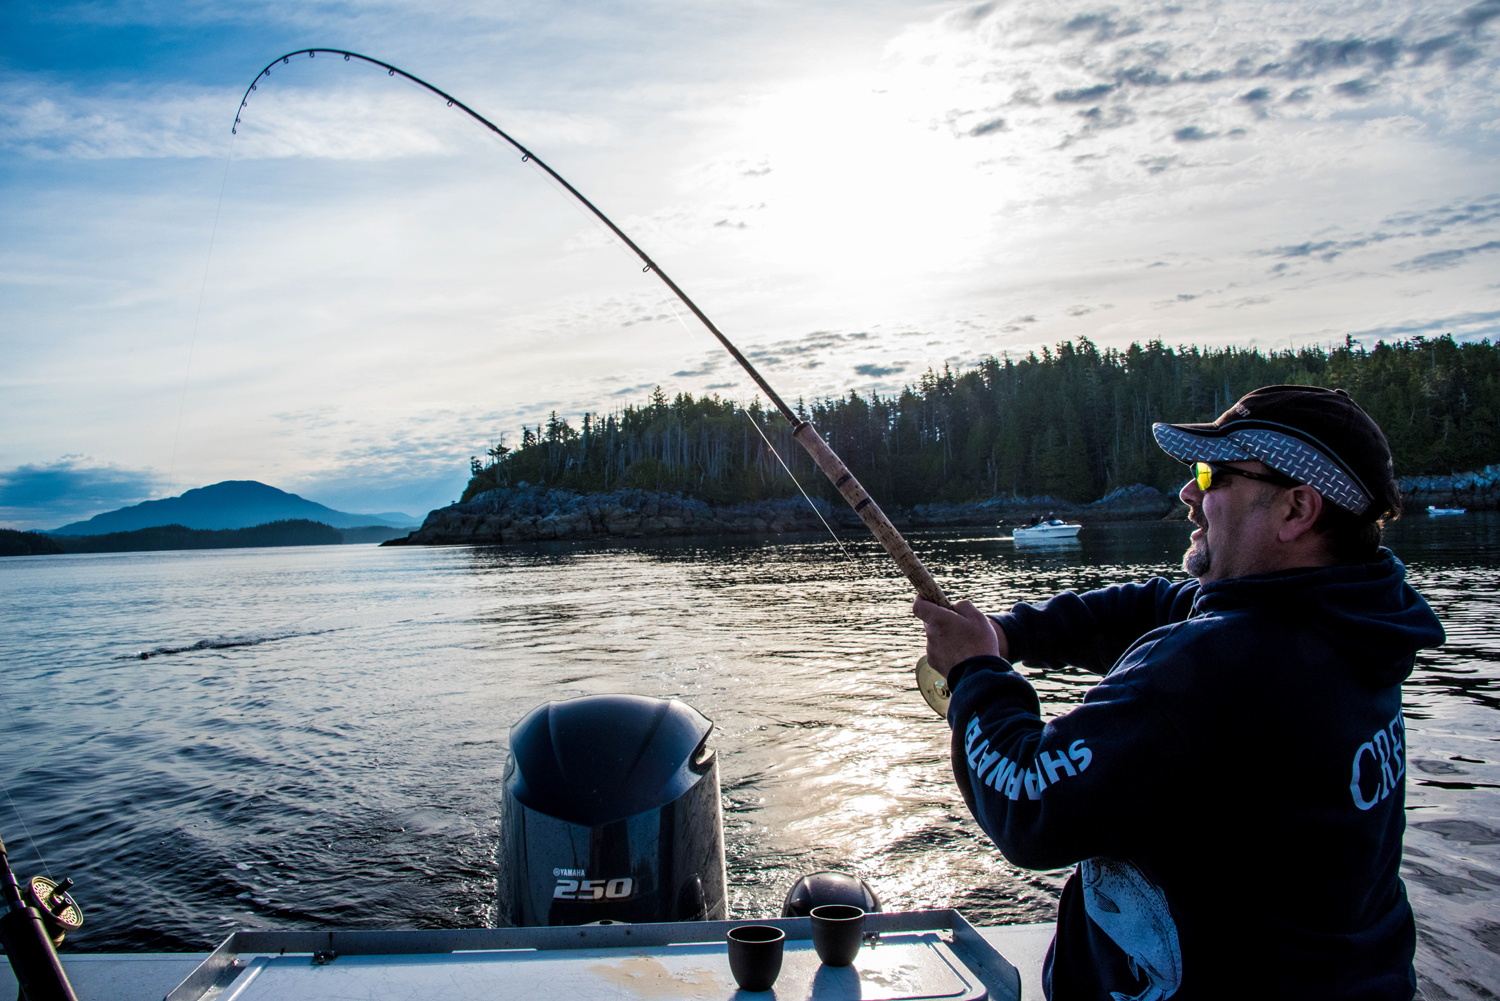 Salmon fishing near Shearwater, on BC's central coast